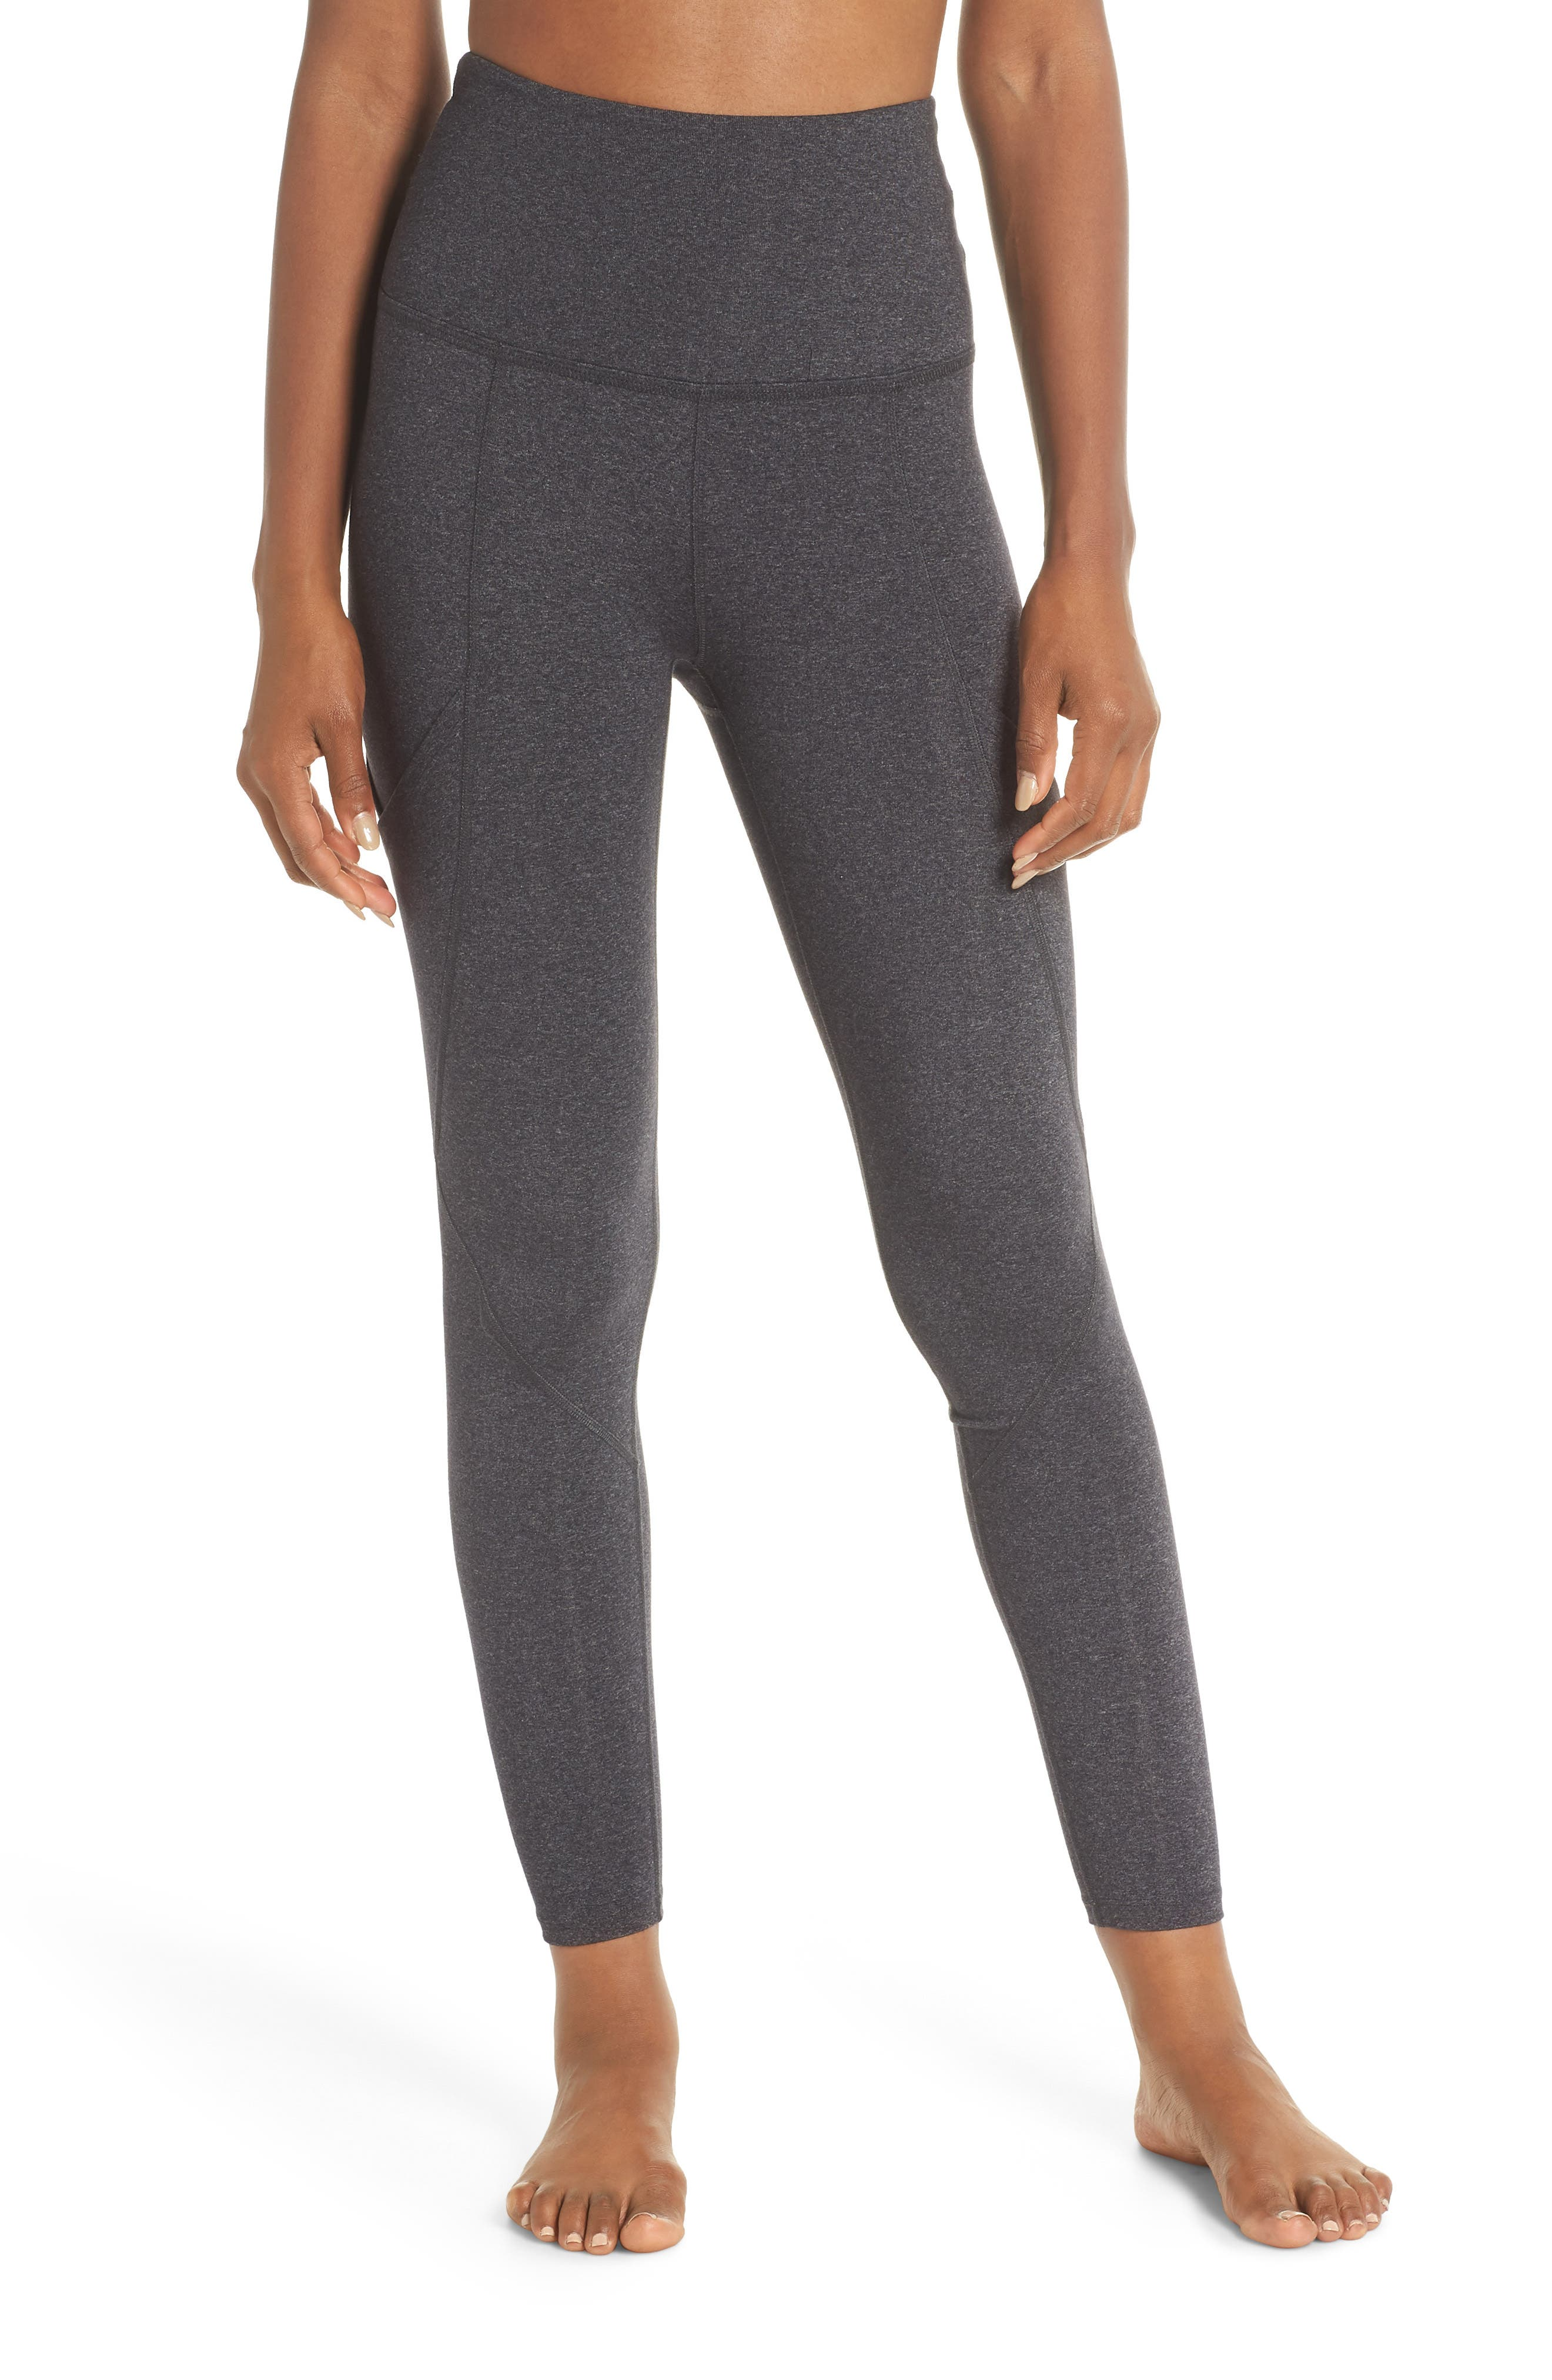 Palomino Midi High Waisted Leggings,                             Main thumbnail 1, color,                             030